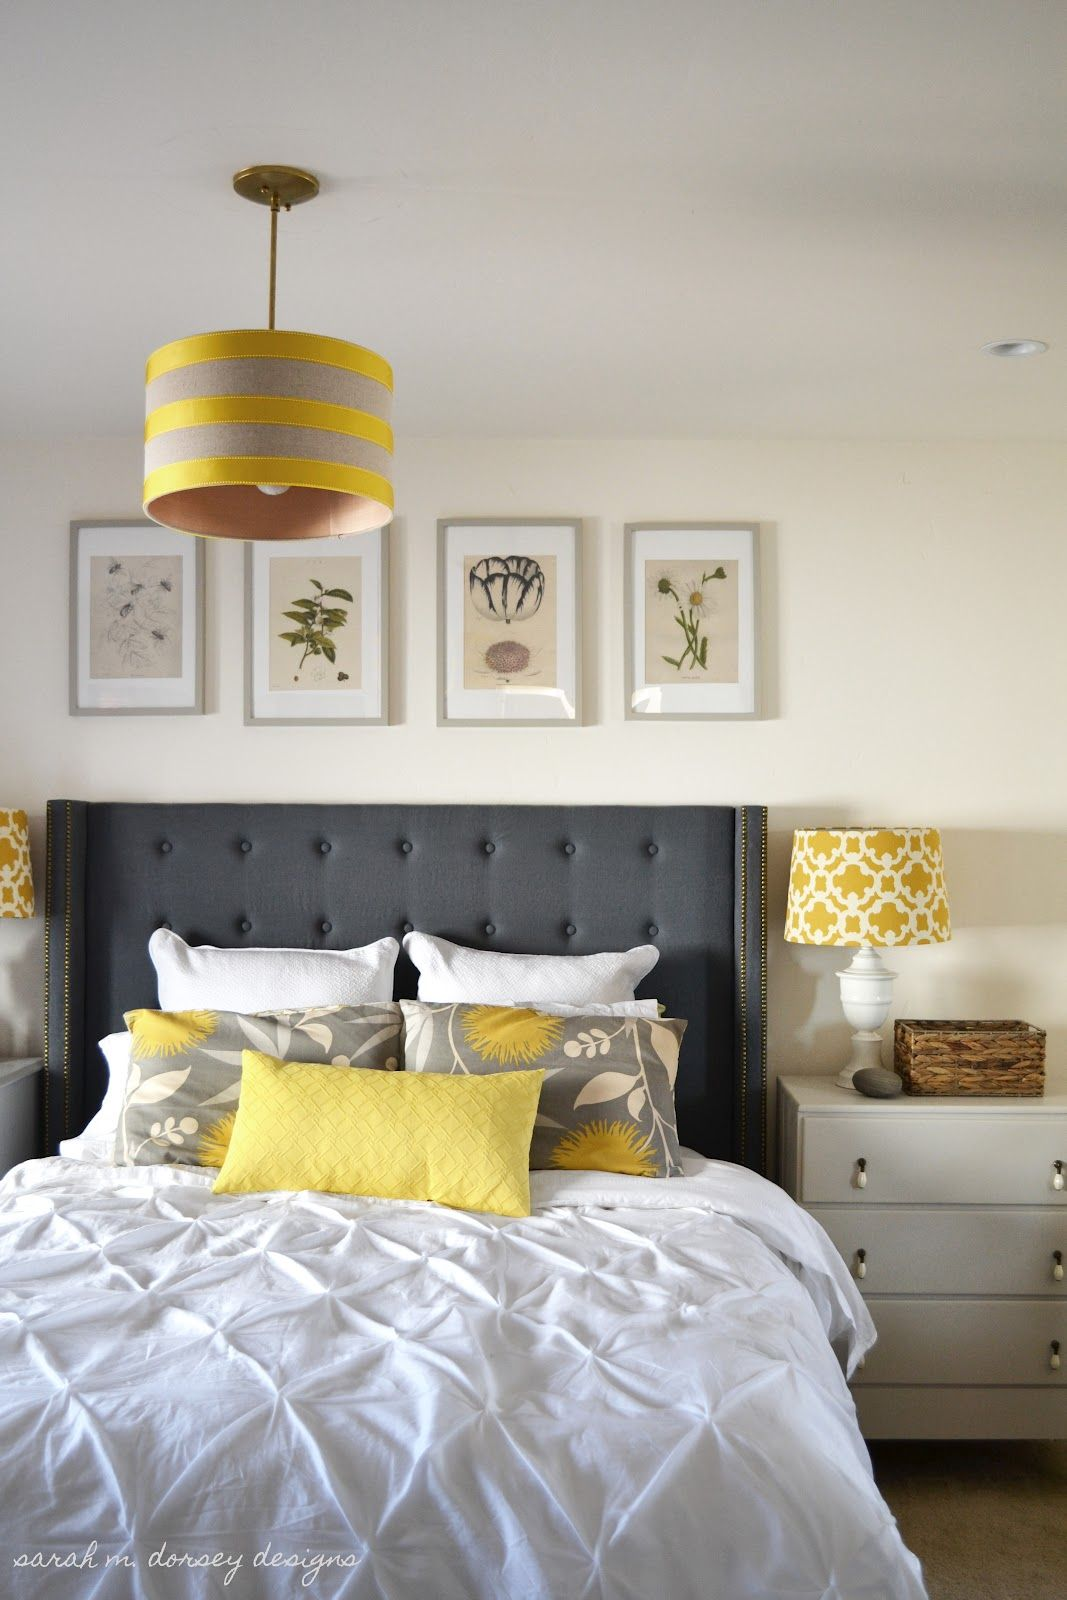 Yellow And Grey Room Designs: Sarah M. Dorsey Designs: Art For Above The Headboard